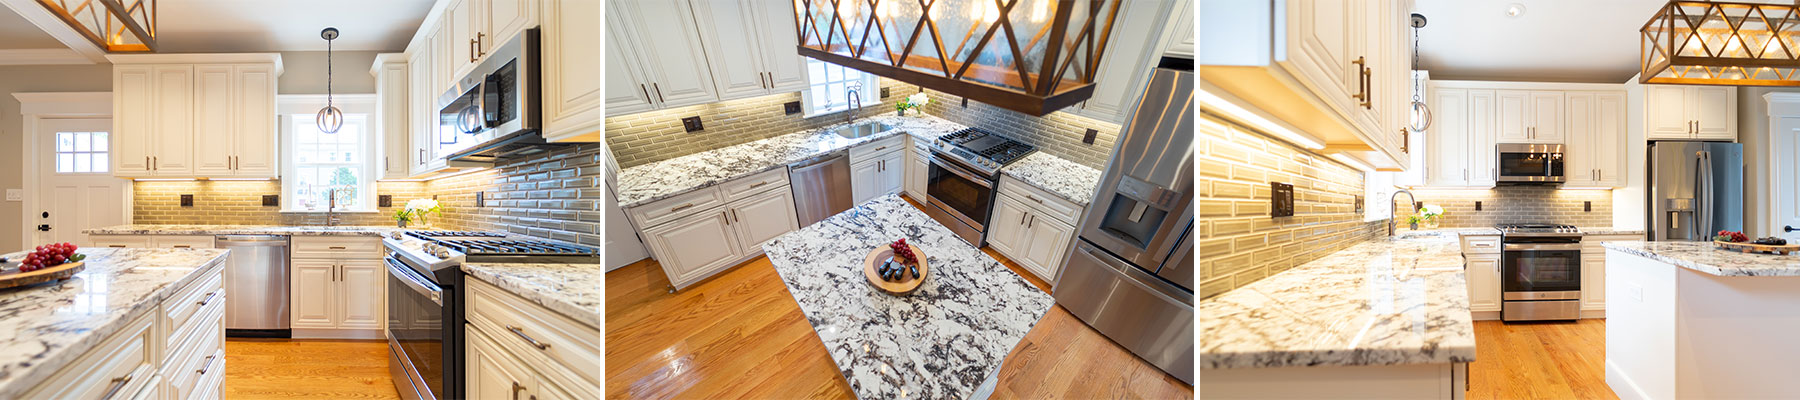 Countertop Project by Classic Rock